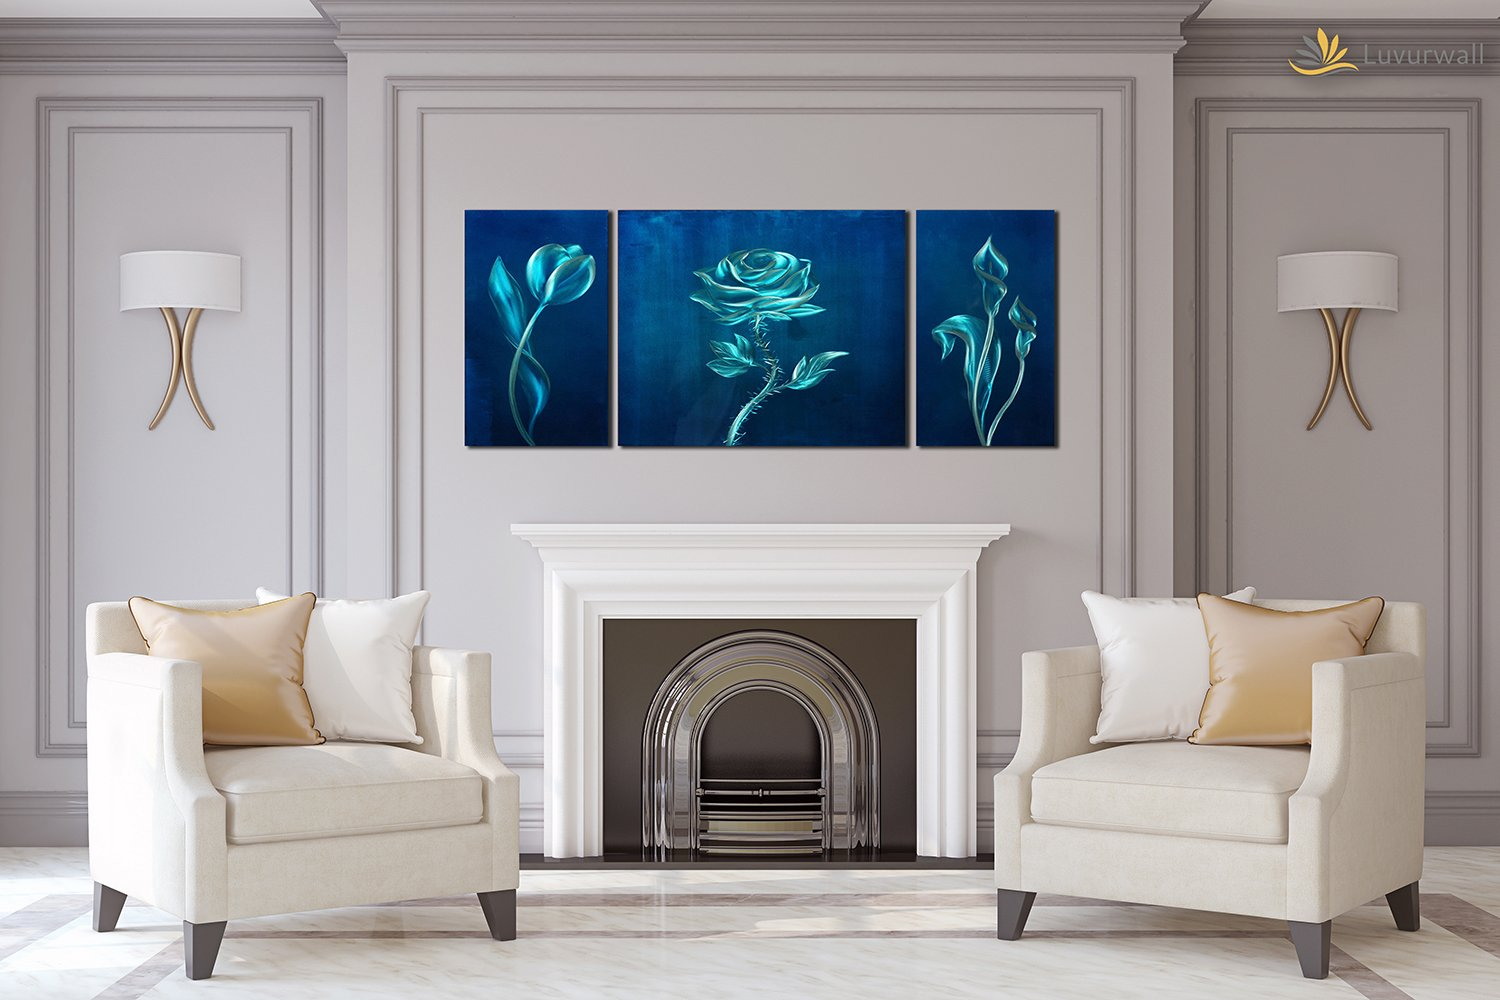 Luvurwall 3 Panel Plants in Blue Background Metal Wall Art, Metal Wall Art - Luvurwall